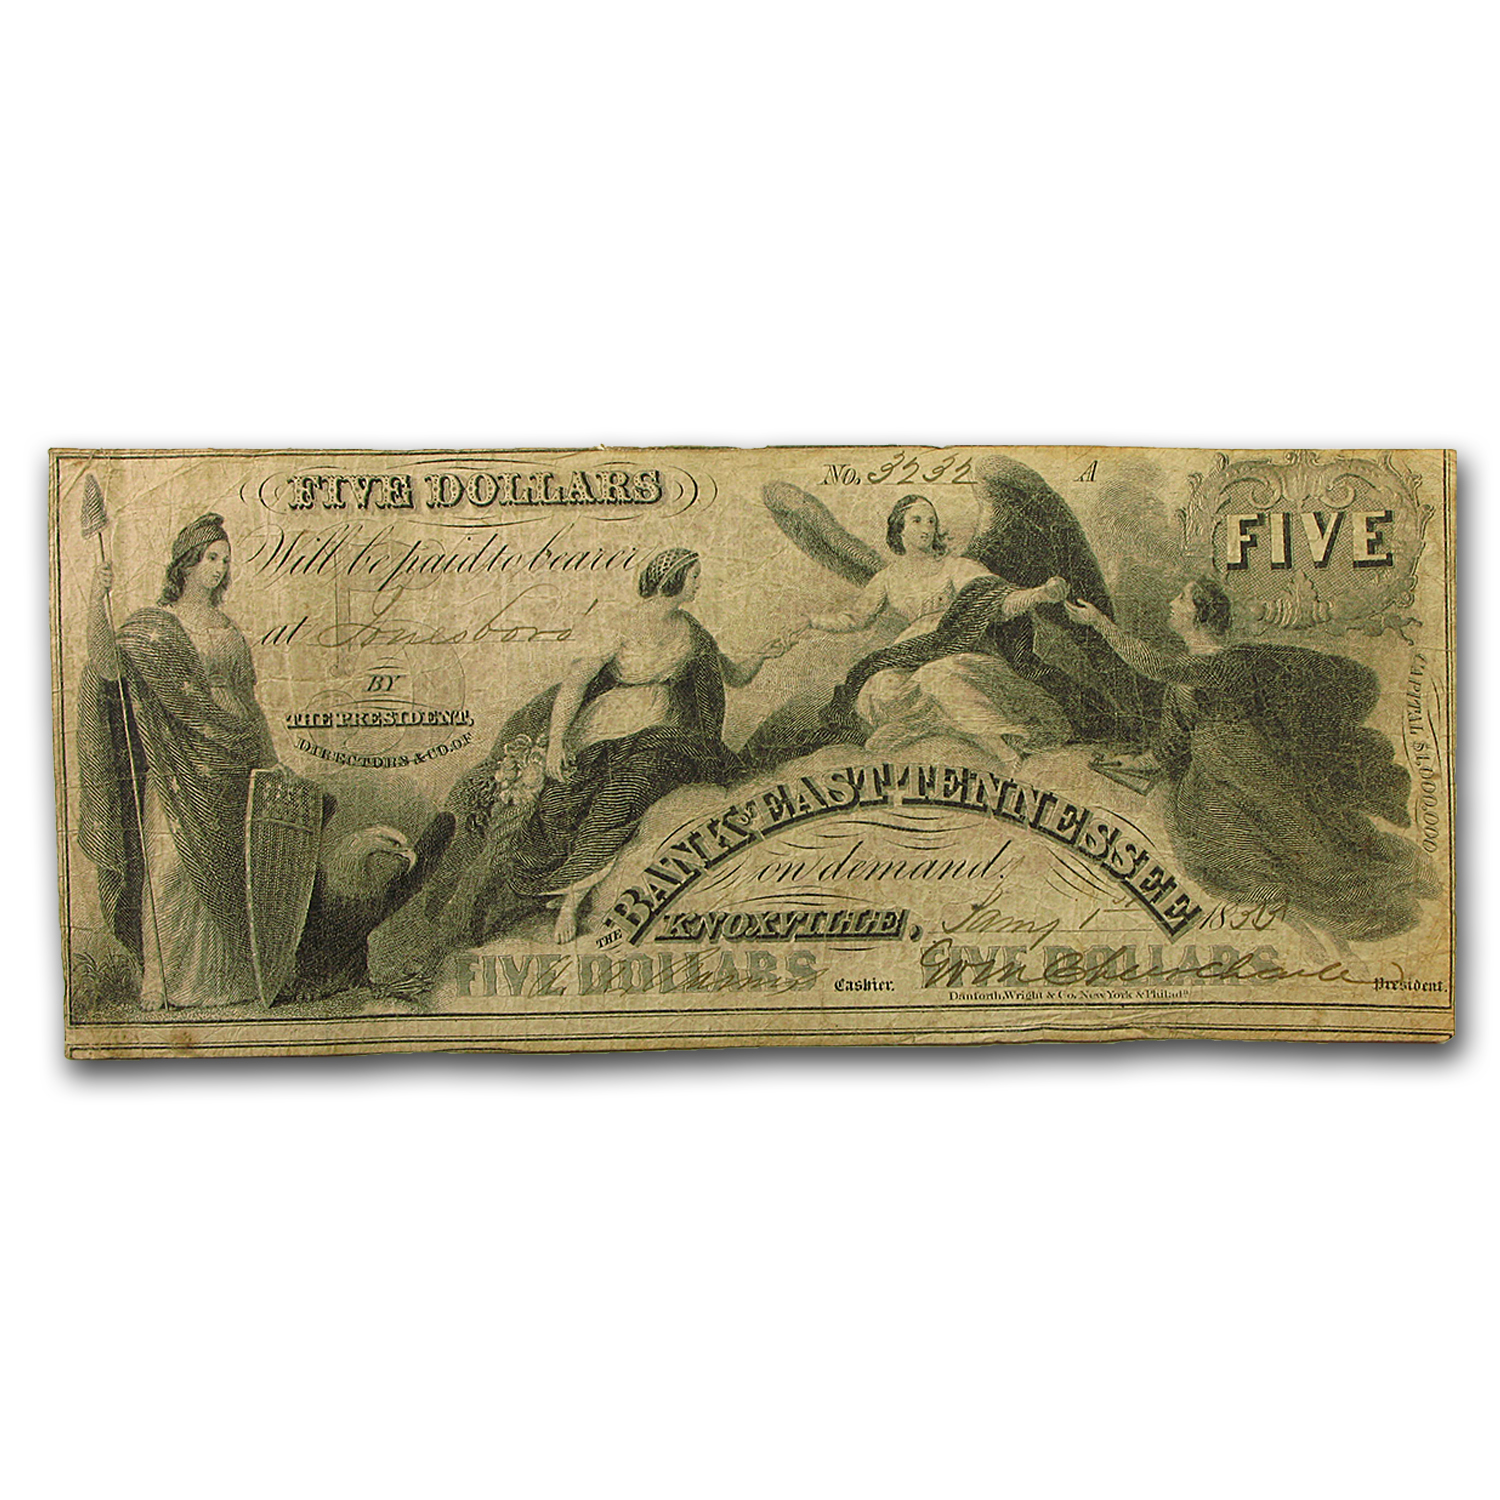 1855 Bank of East Tennessee @ Knoxville $5.00 Note TN-55 Fine